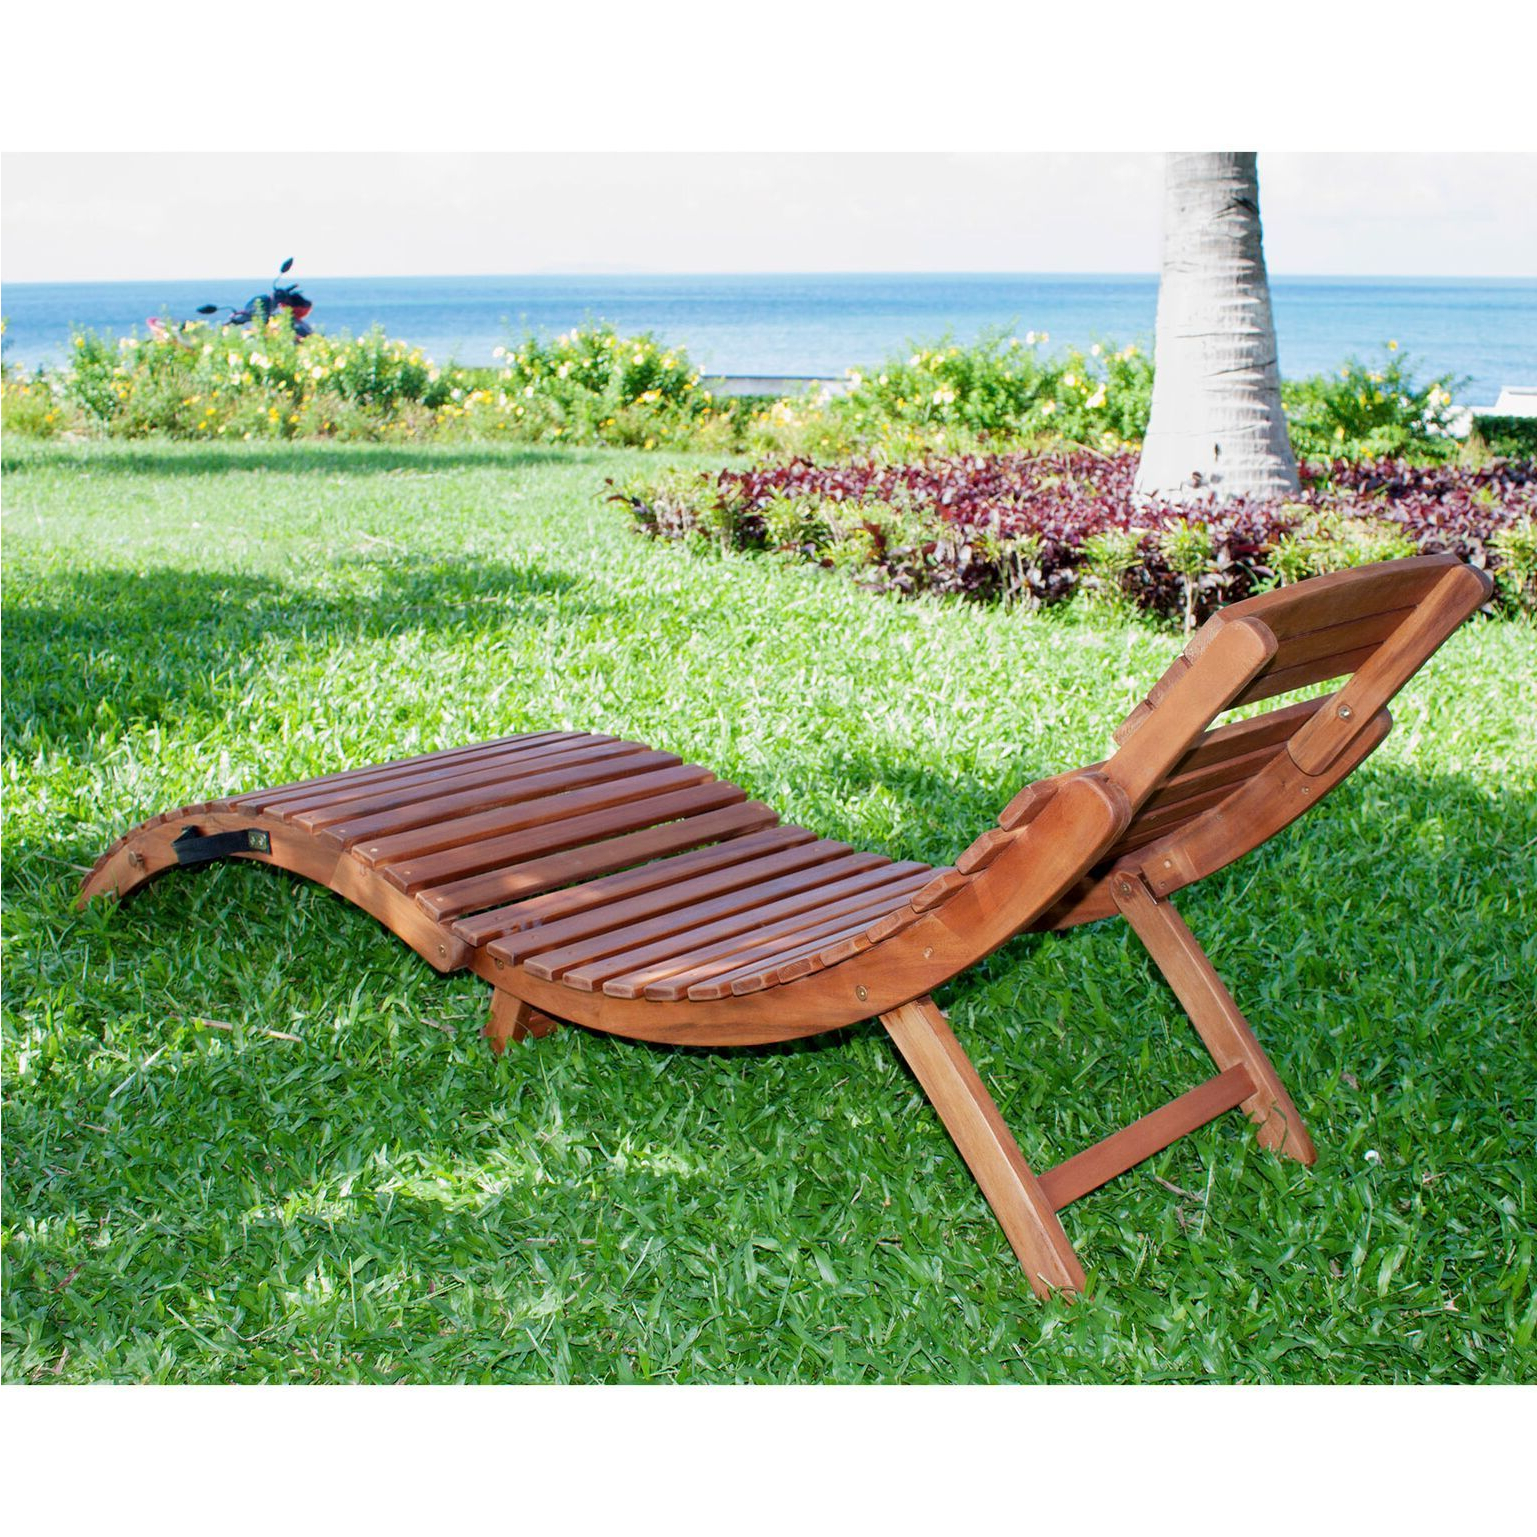 Havenside Home Shi Shi Curved Folding Chaise Lounger With Well Known Curved Folding Chaise Loungers (View 18 of 25)